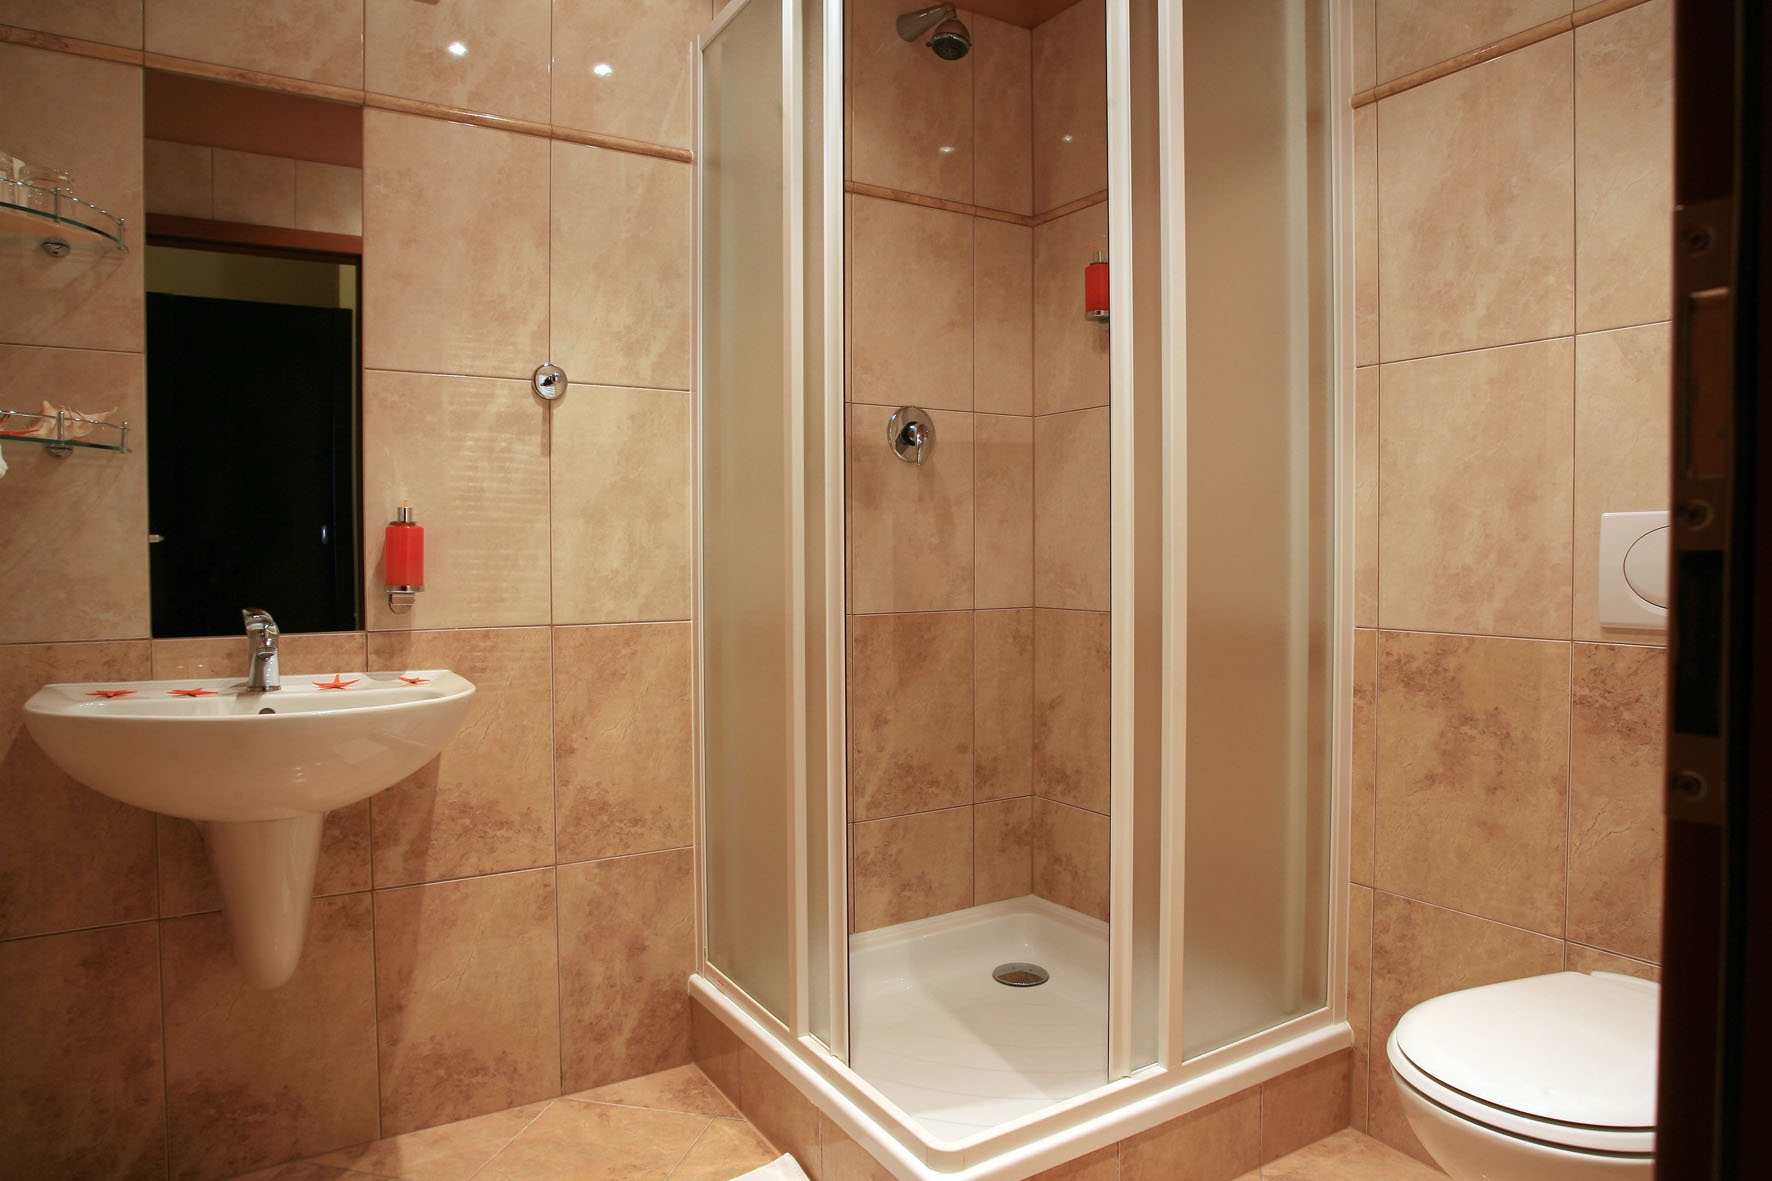 Bathroom designs pictures Photo - 1